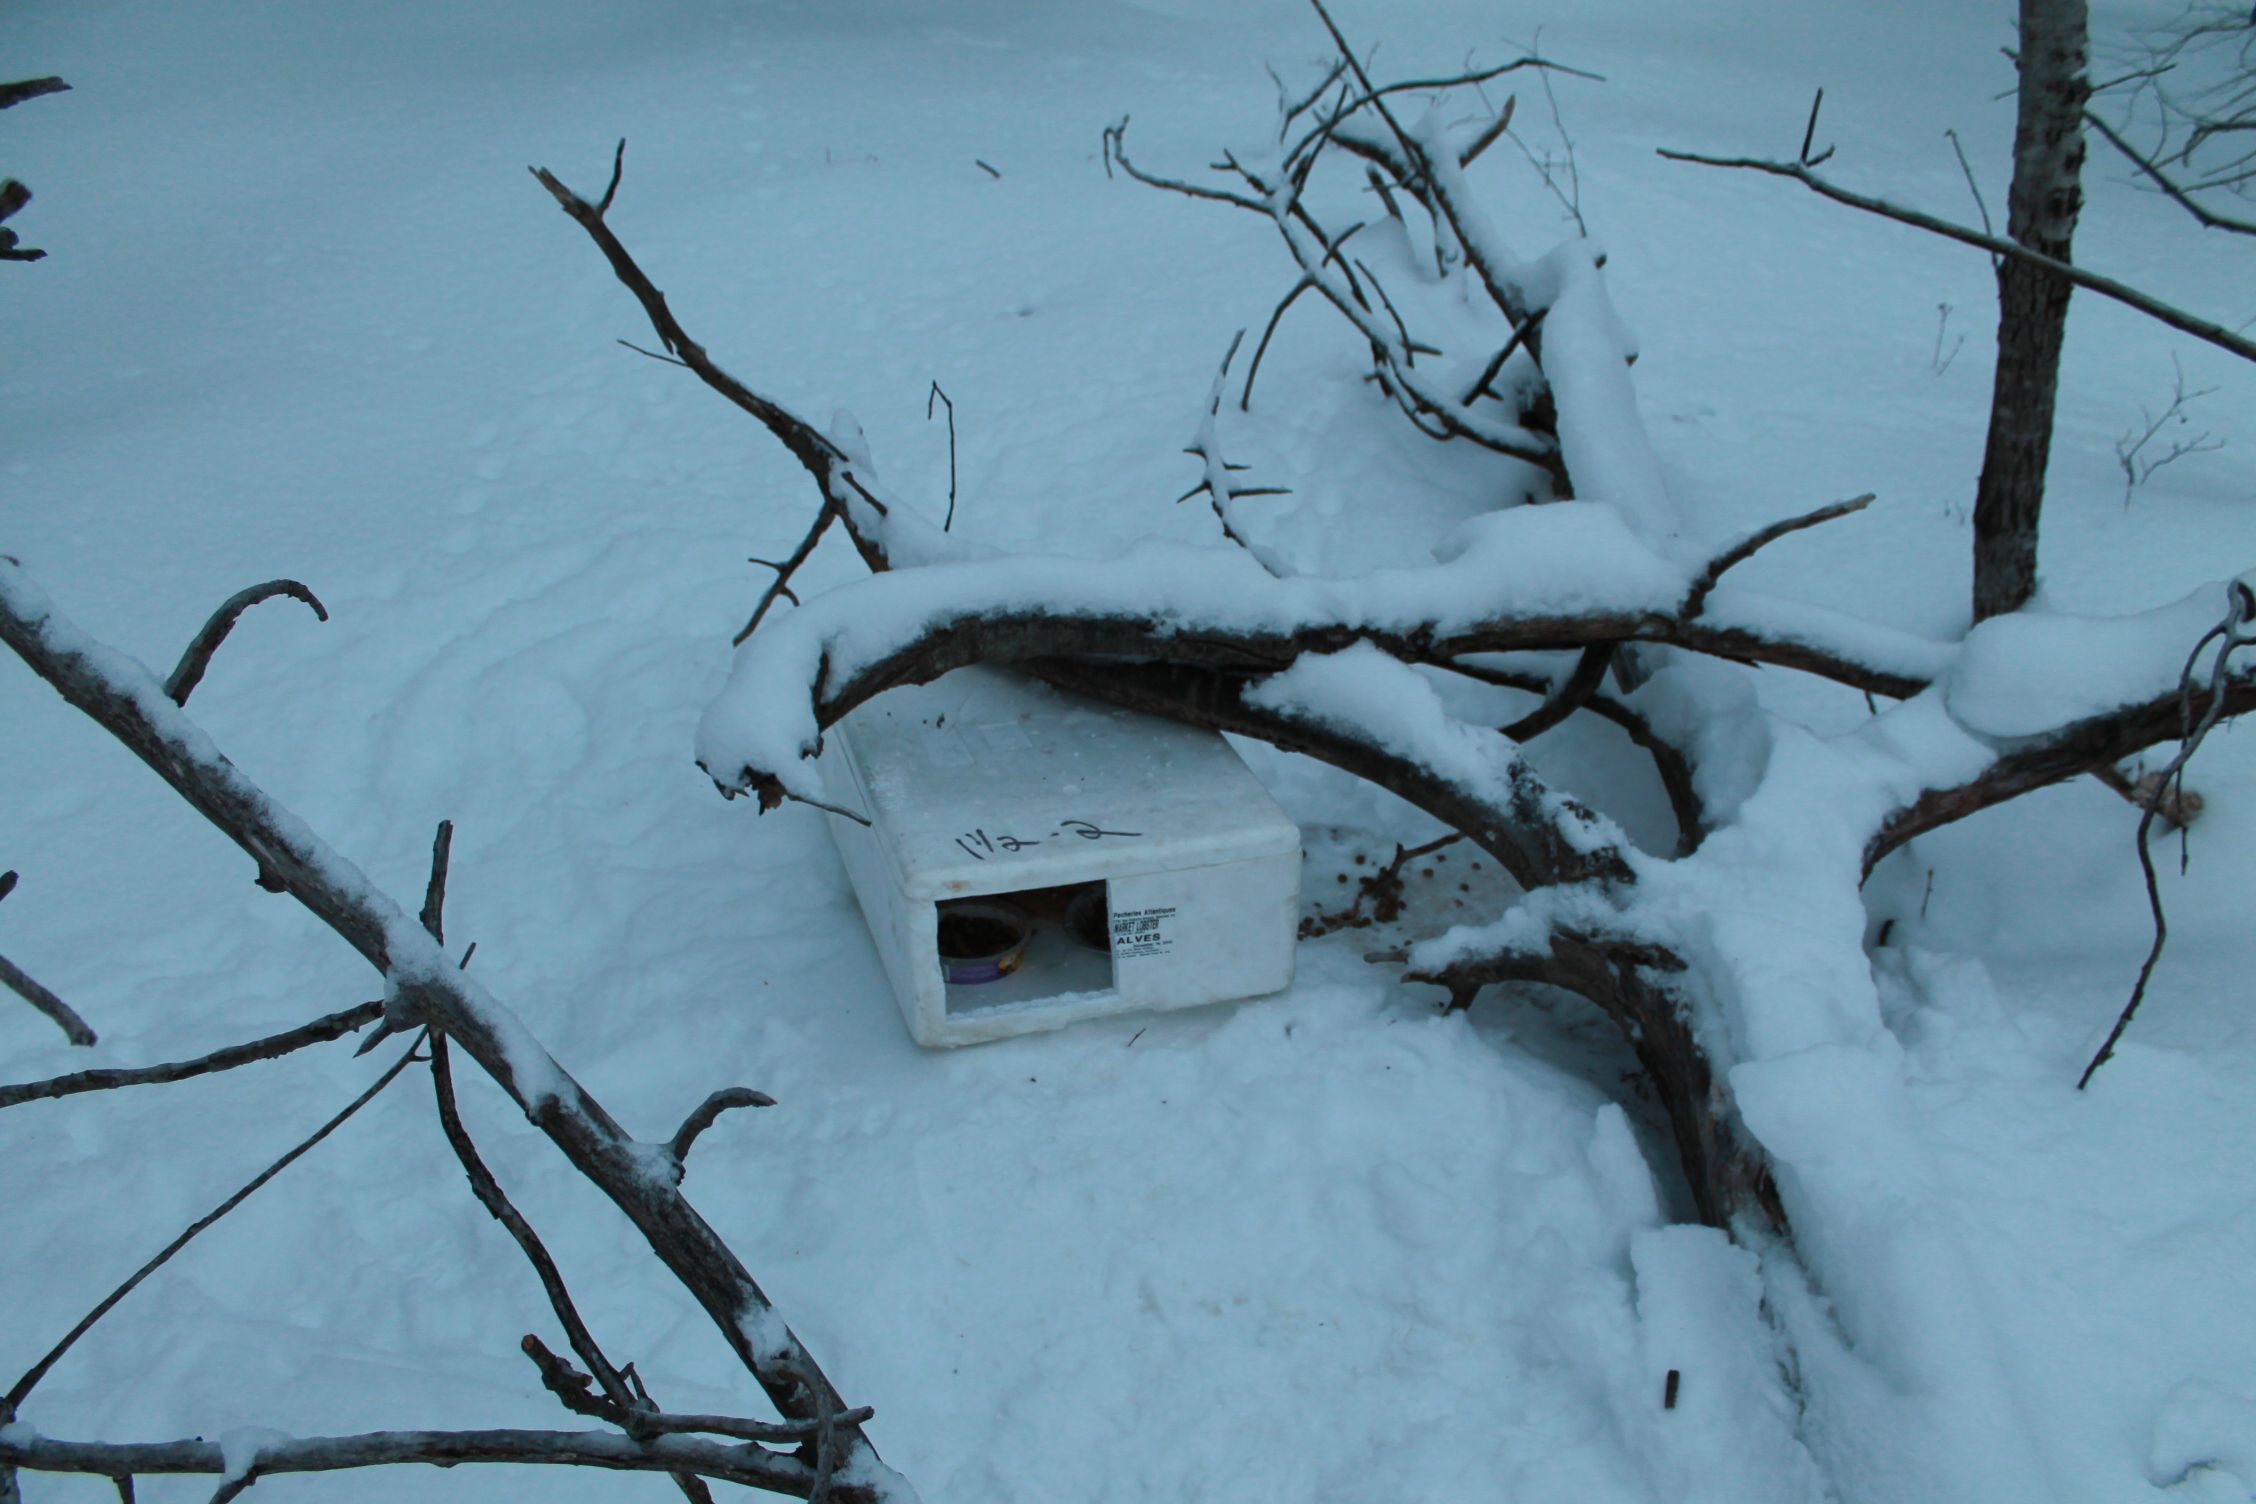 This Guy Found A Mysterious Box In The Snow. Nothing Could Have Prepared Him For What Was In It.